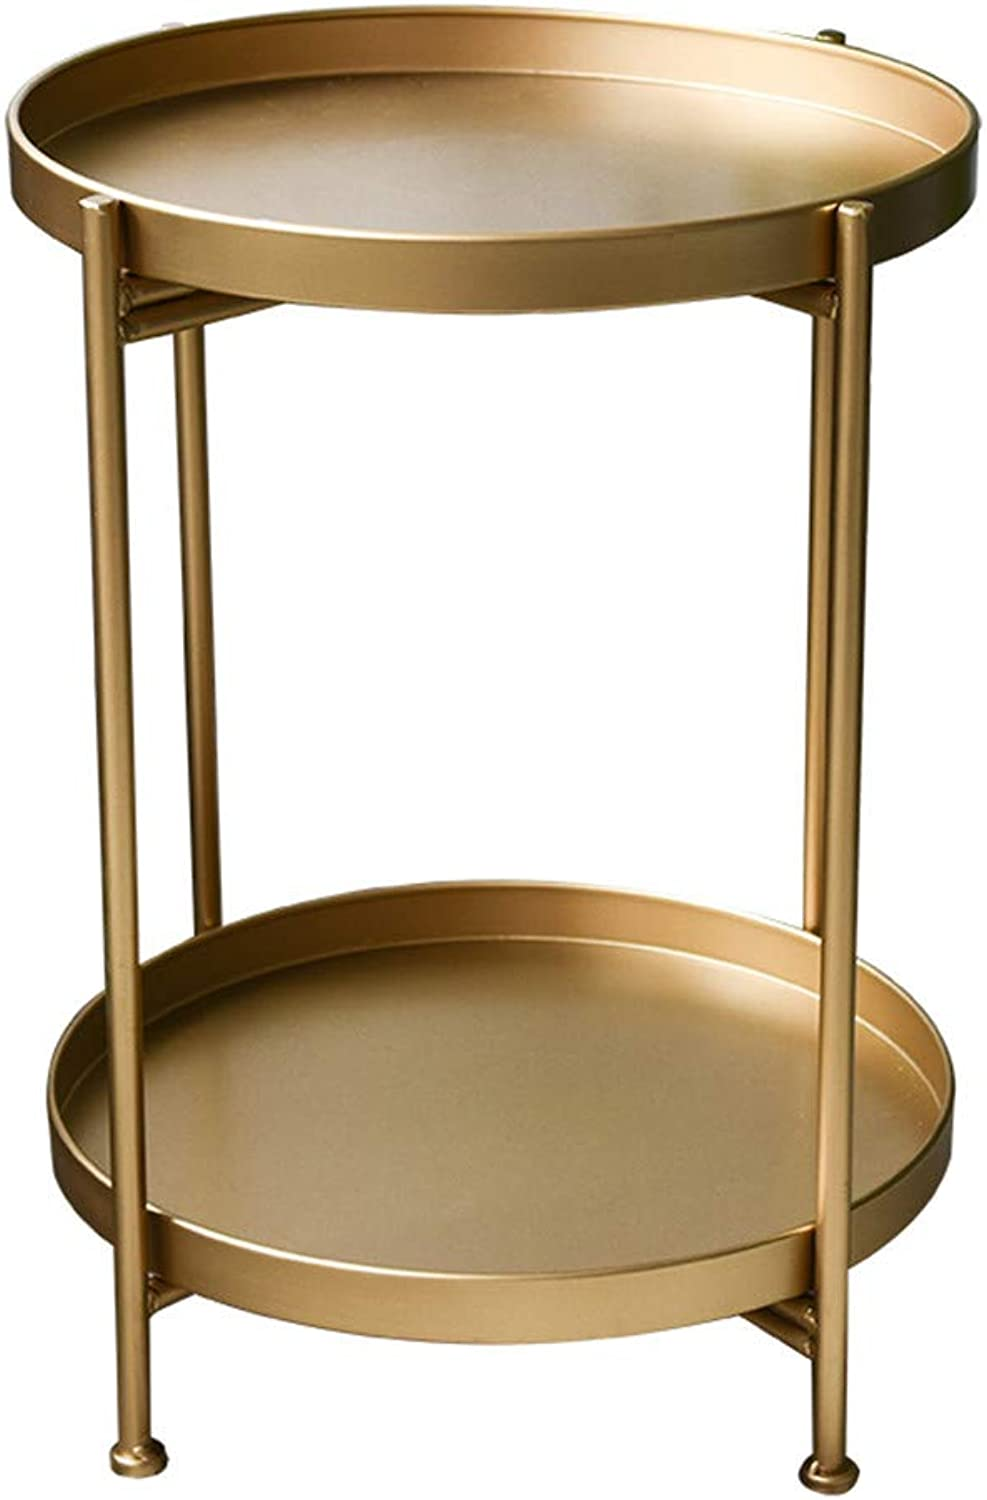 Oval gold Mirrored Glass Top Metal Wrought Iron Double-Sided Side Table Round Living Room Sofa Coffee End Shelf Bathroom Storage Utility Modern Design